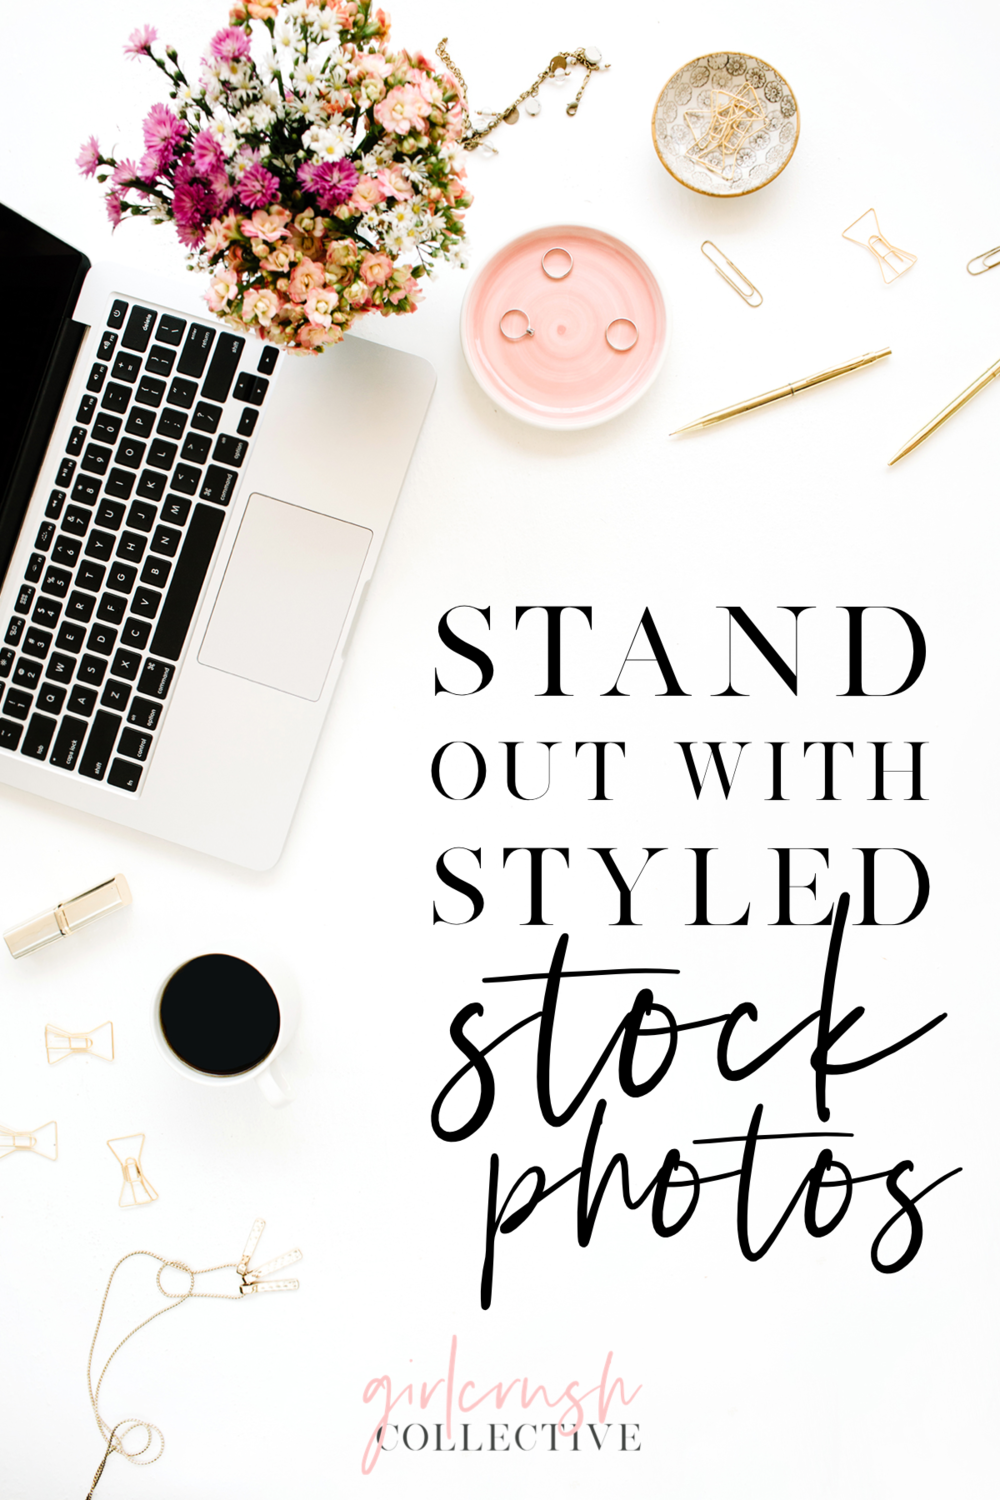 stand out with stock photos - free and premium stock photos for blogs